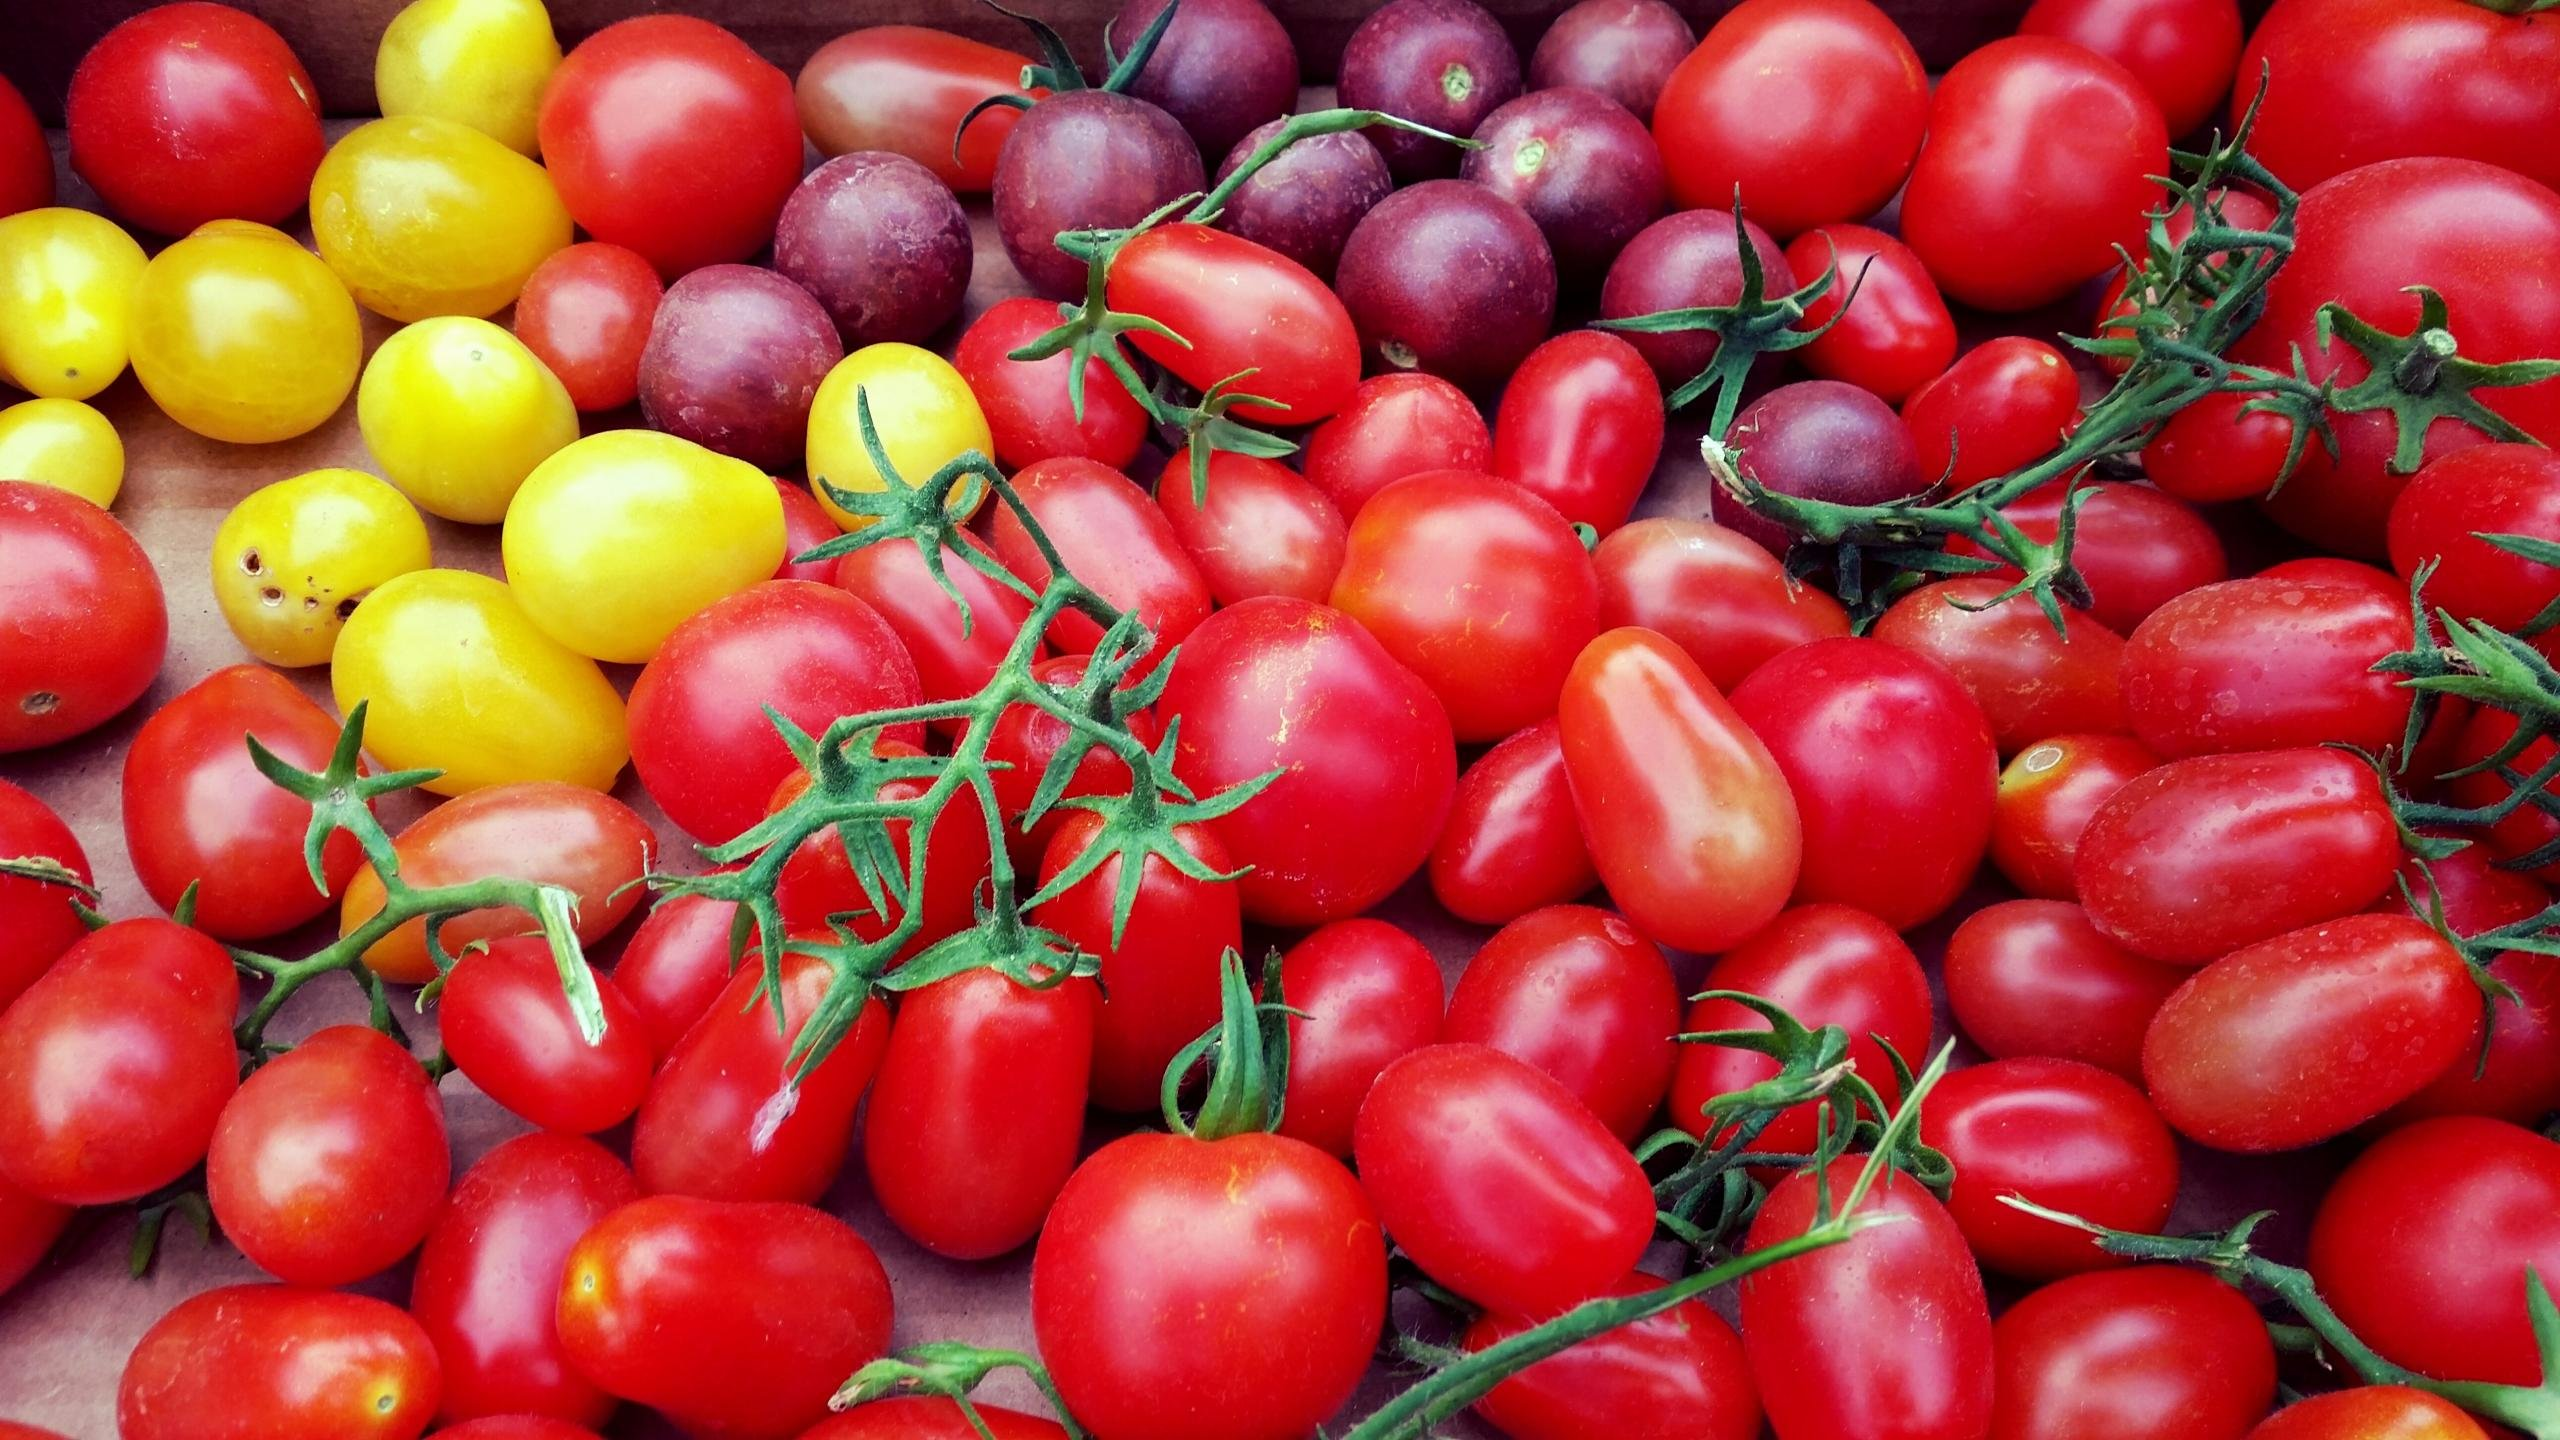 Download hd 2560x1440 Tomato computer wallpaper ID:95448 for free